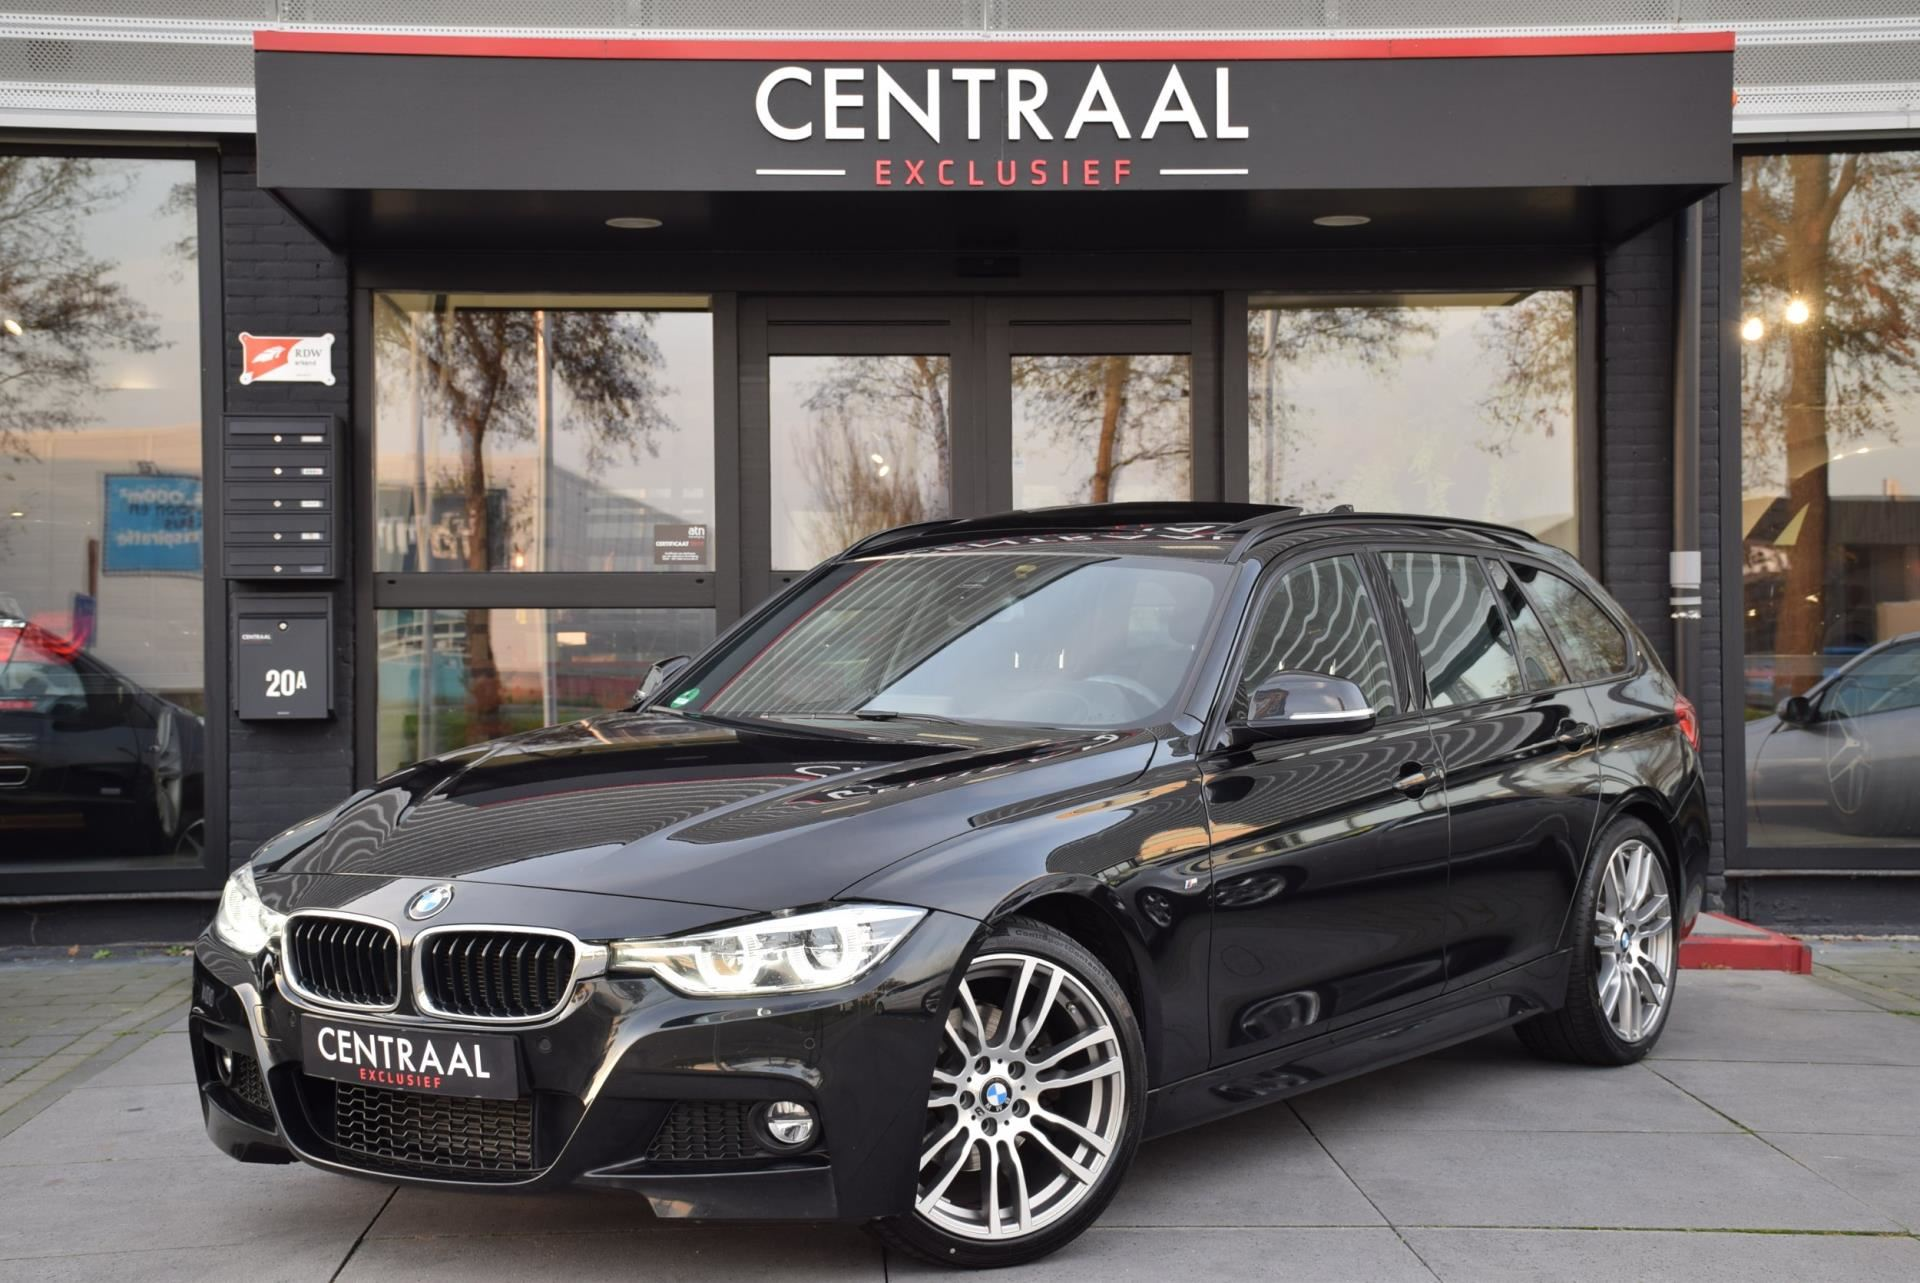 BMW 3-serie Touring occasion - Centraal Exclusief B.V.